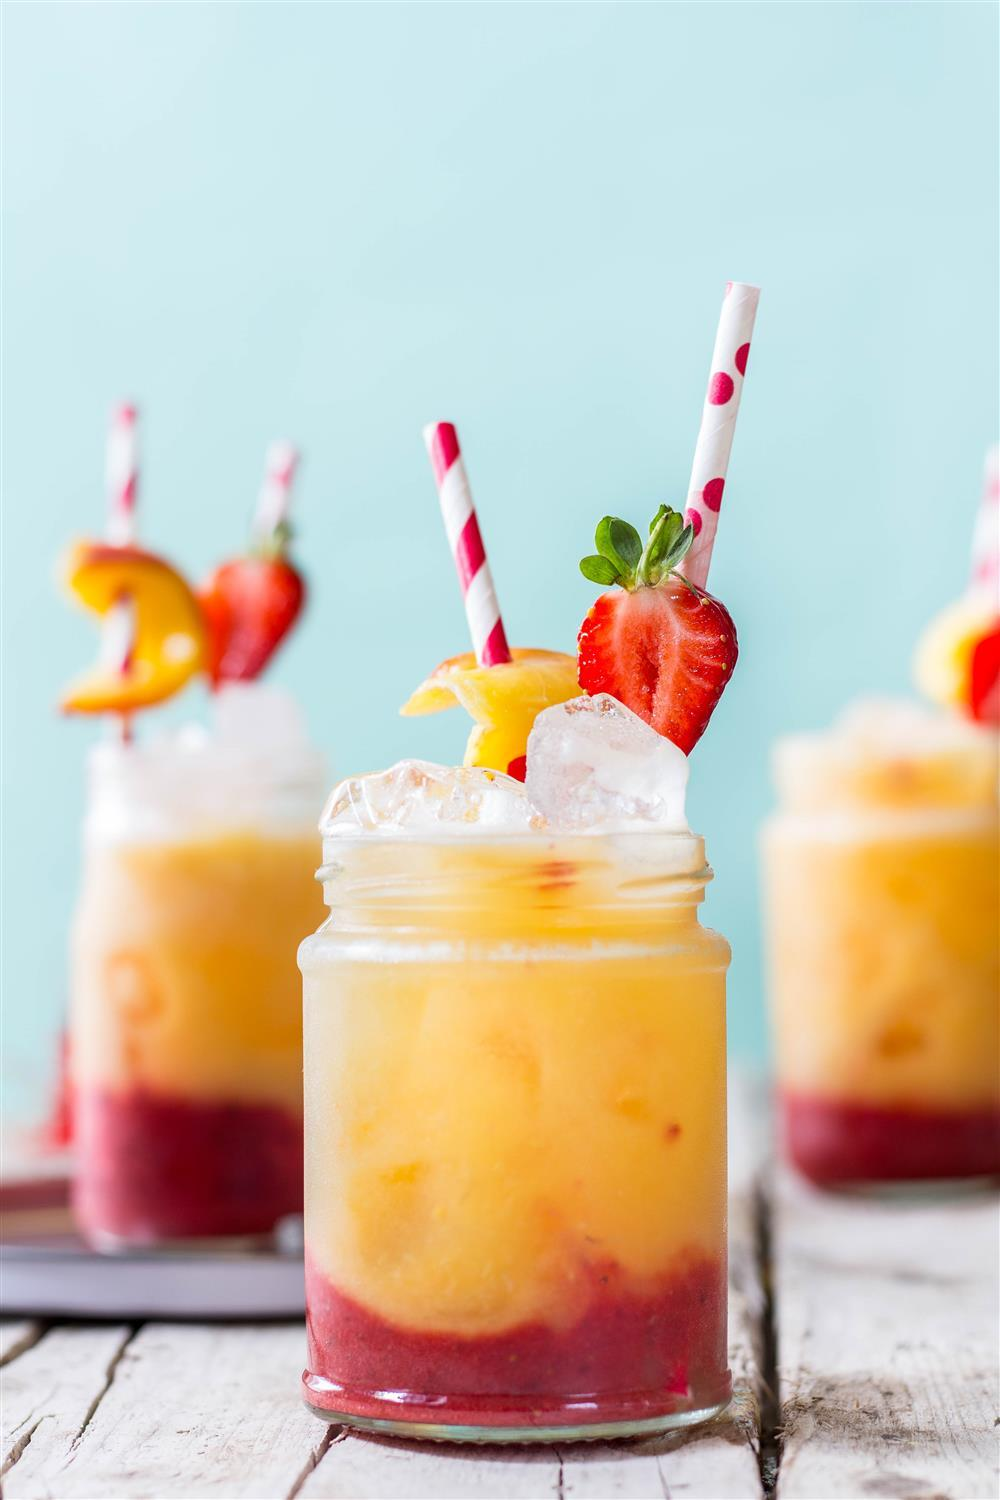 Delightful spring mocktail - roasted peach and strawberry fizz with no added sugar. Click to find the whole recipe or pin and save for later!